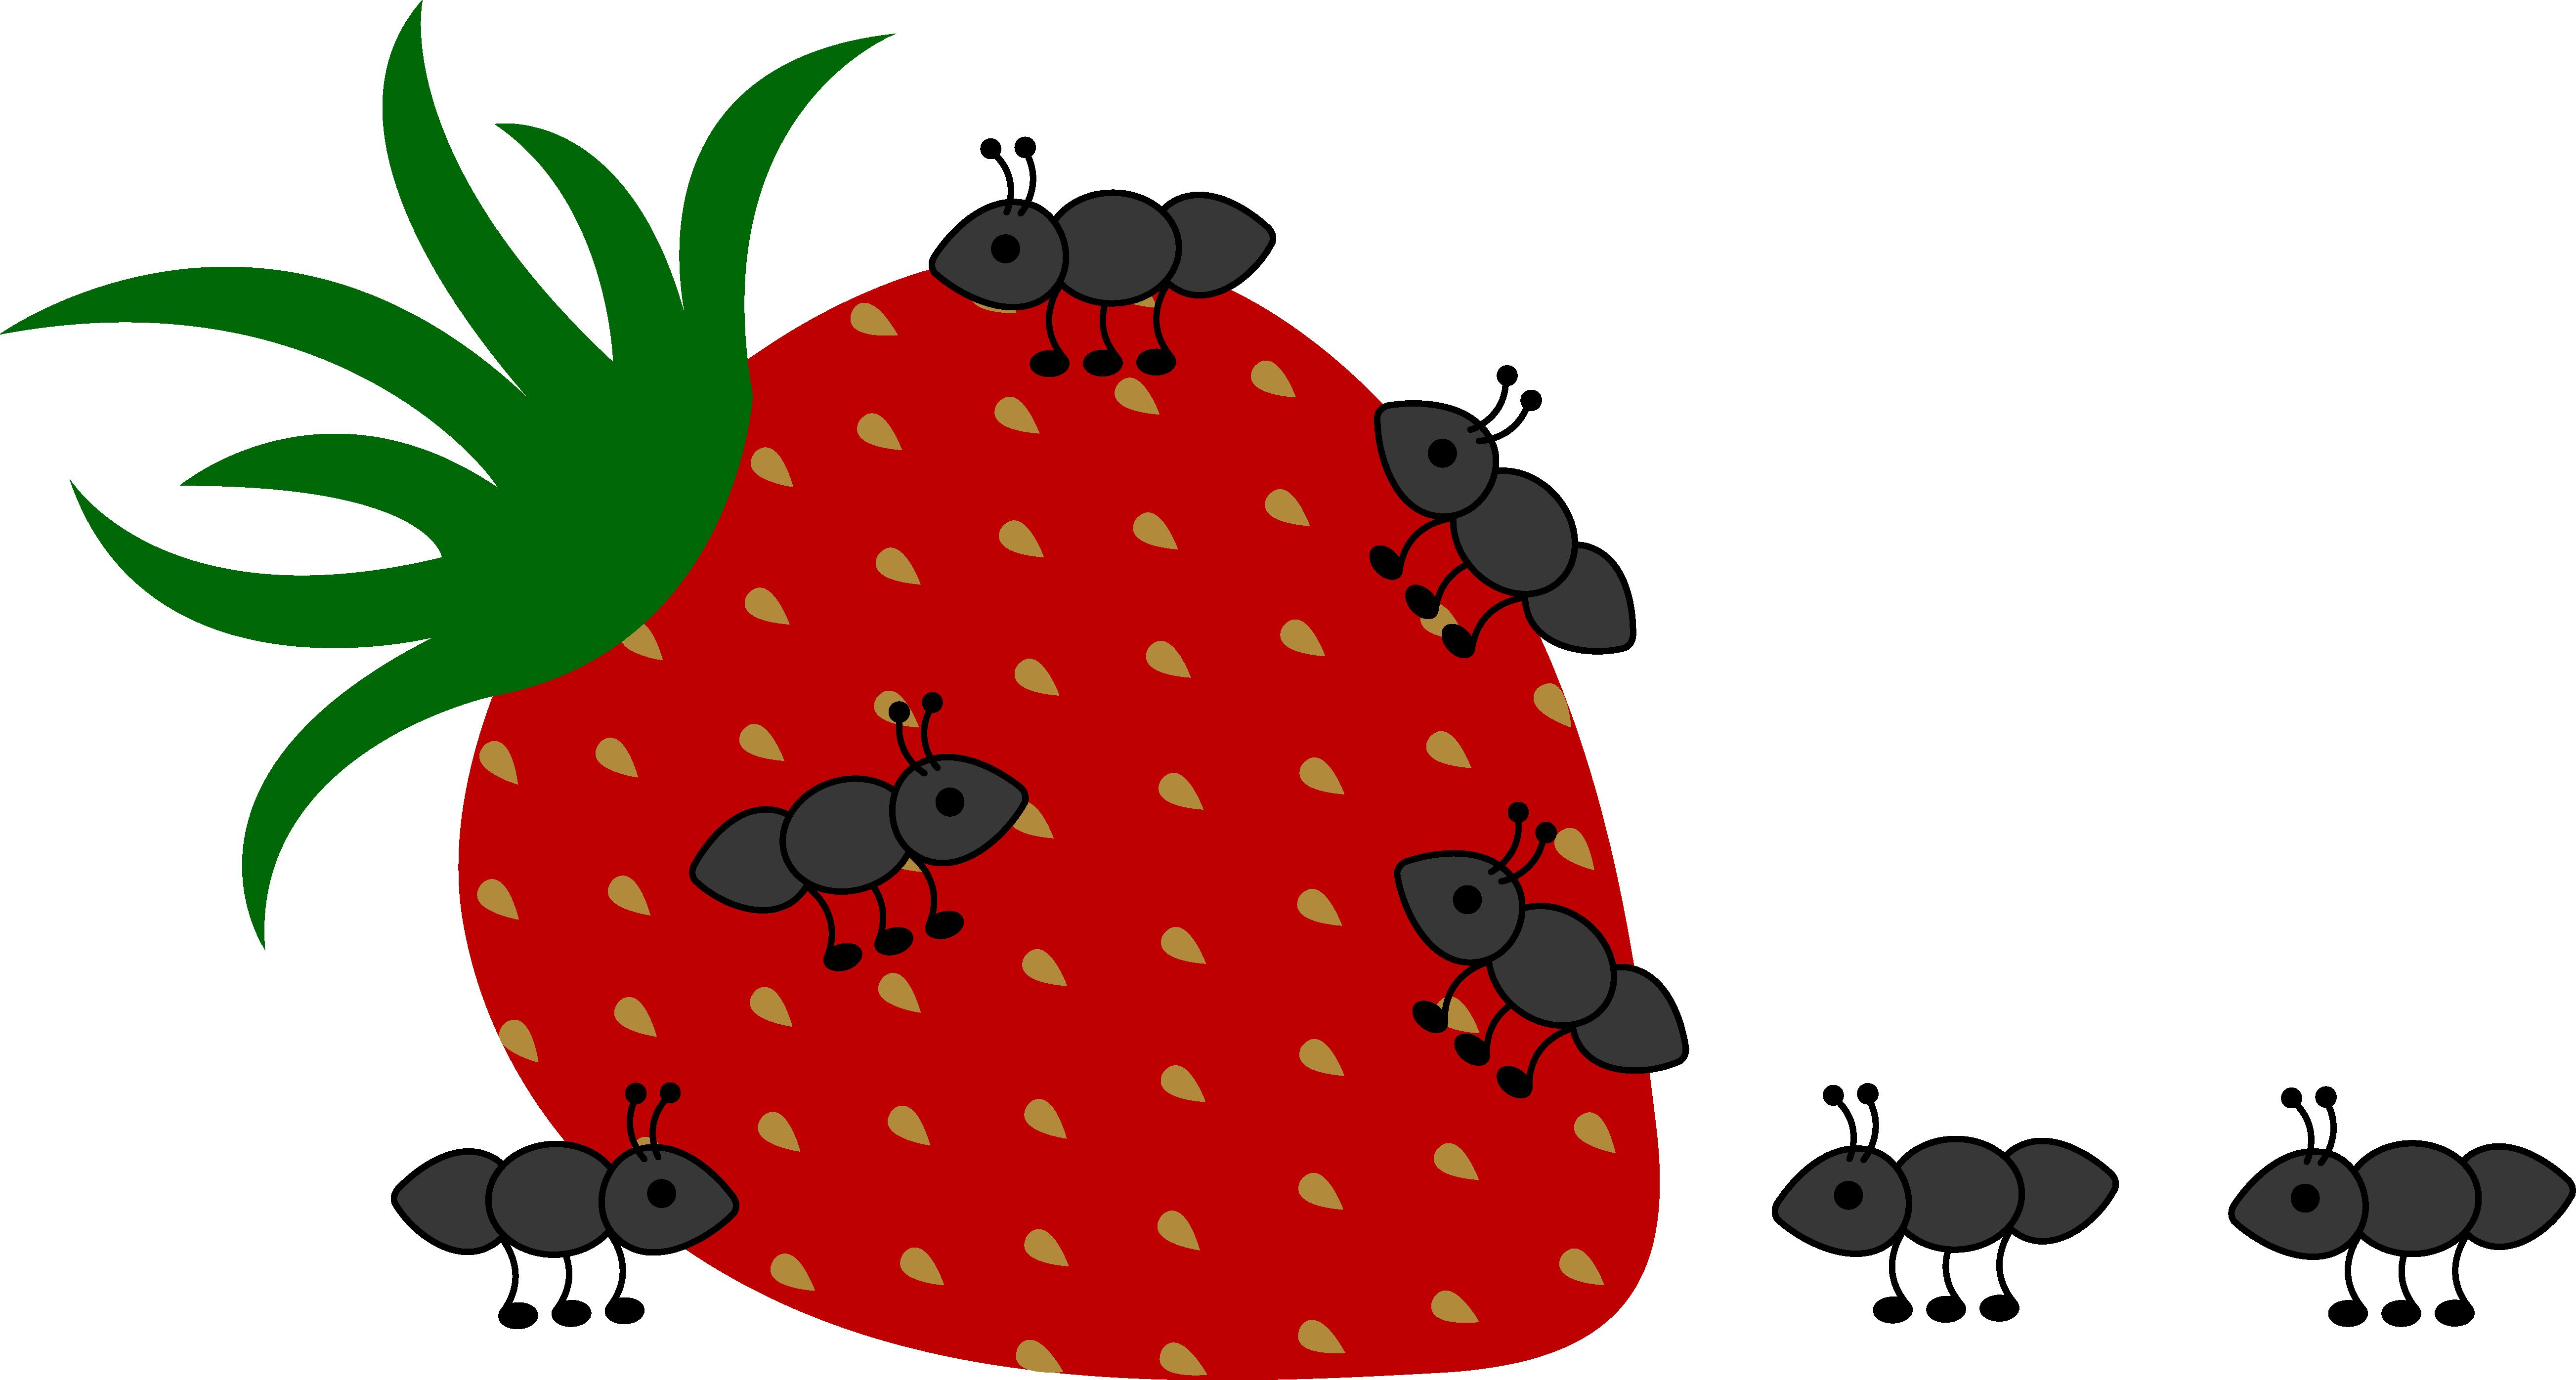 Ant clipart picnic basket Picnic ants The Clipart Cliparts